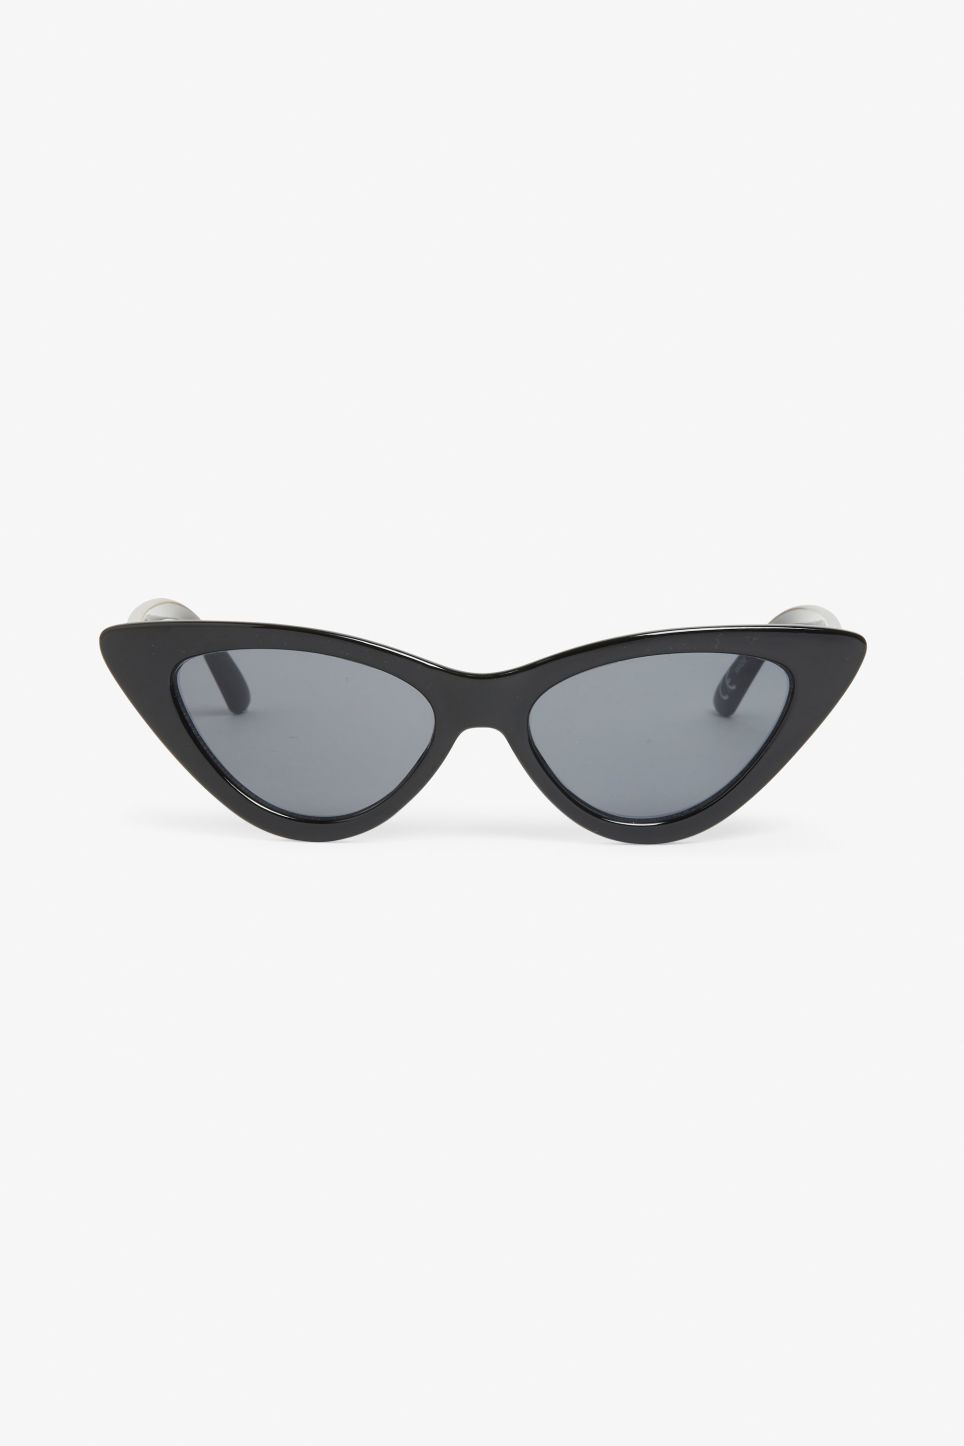 5f67229a61d Sunglasses - Accessories - Monki